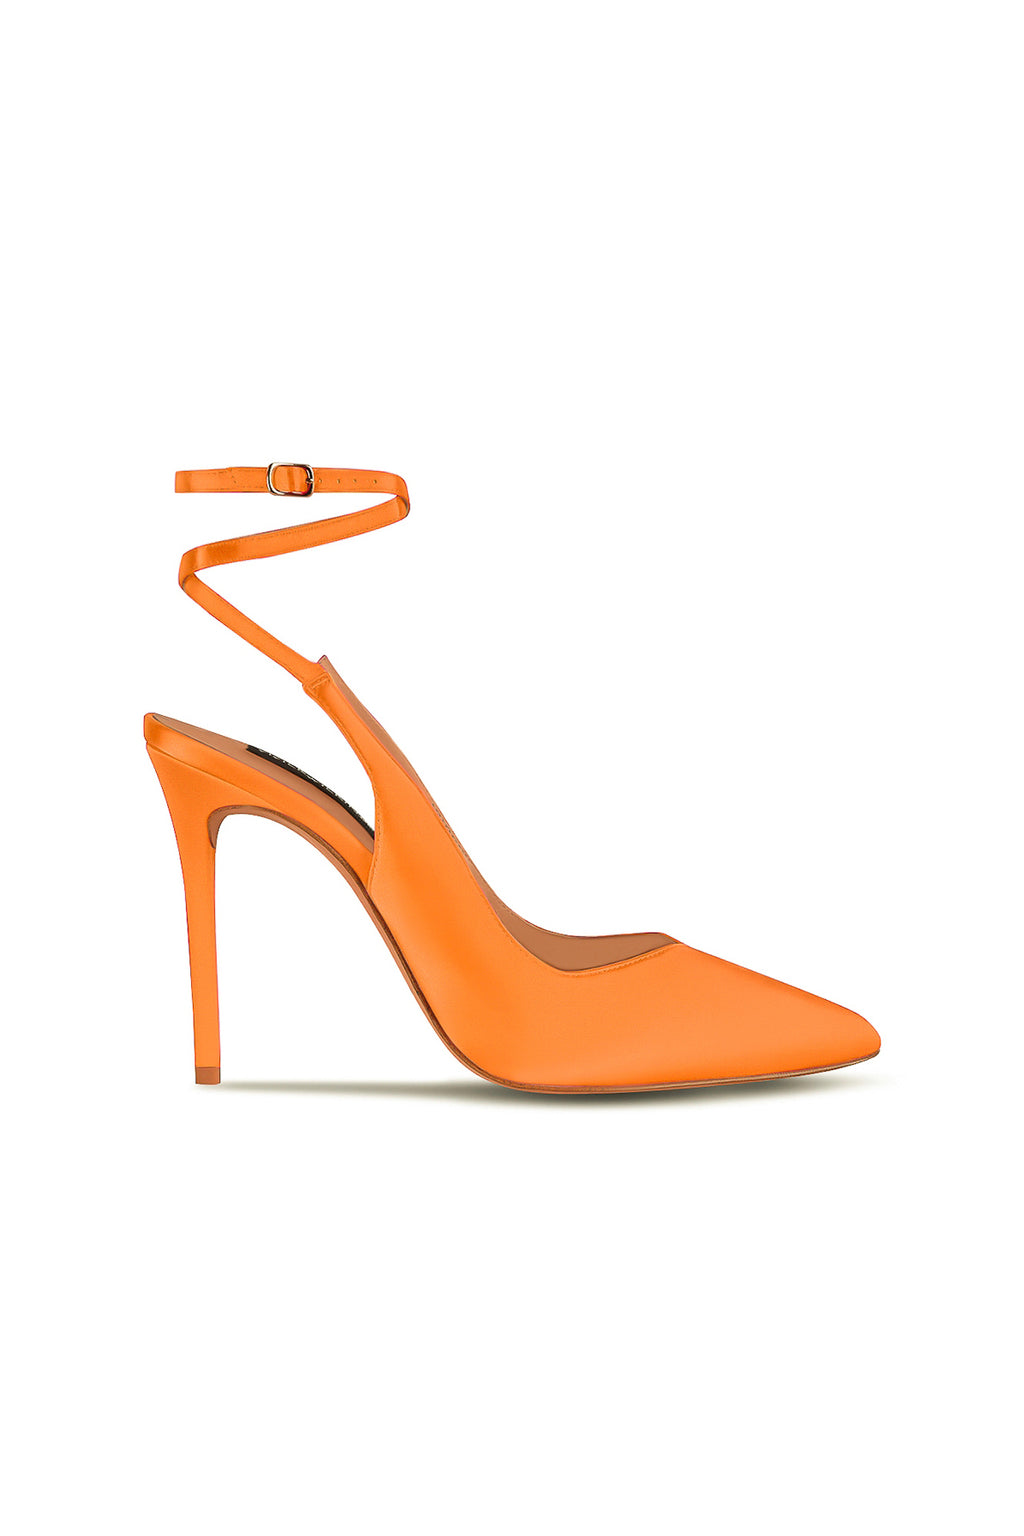 Lana Wilkinson Bec in Orange Neon Satin